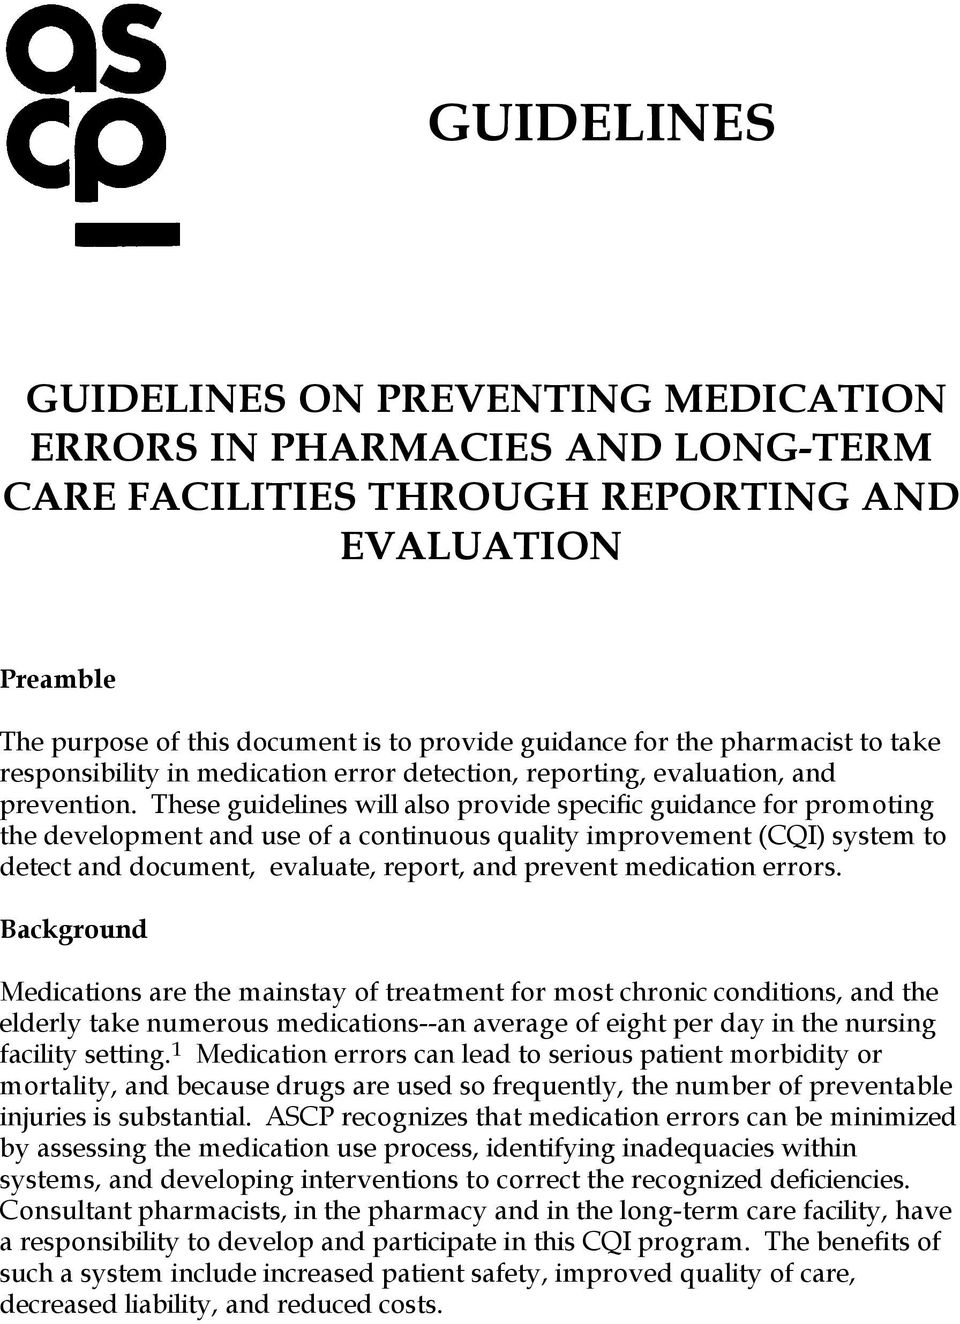 These guidelines will also provide specific guidance for promoting the development and use of a continuous quality improvement (CQI) system to detect and document, evaluate, report, and prevent